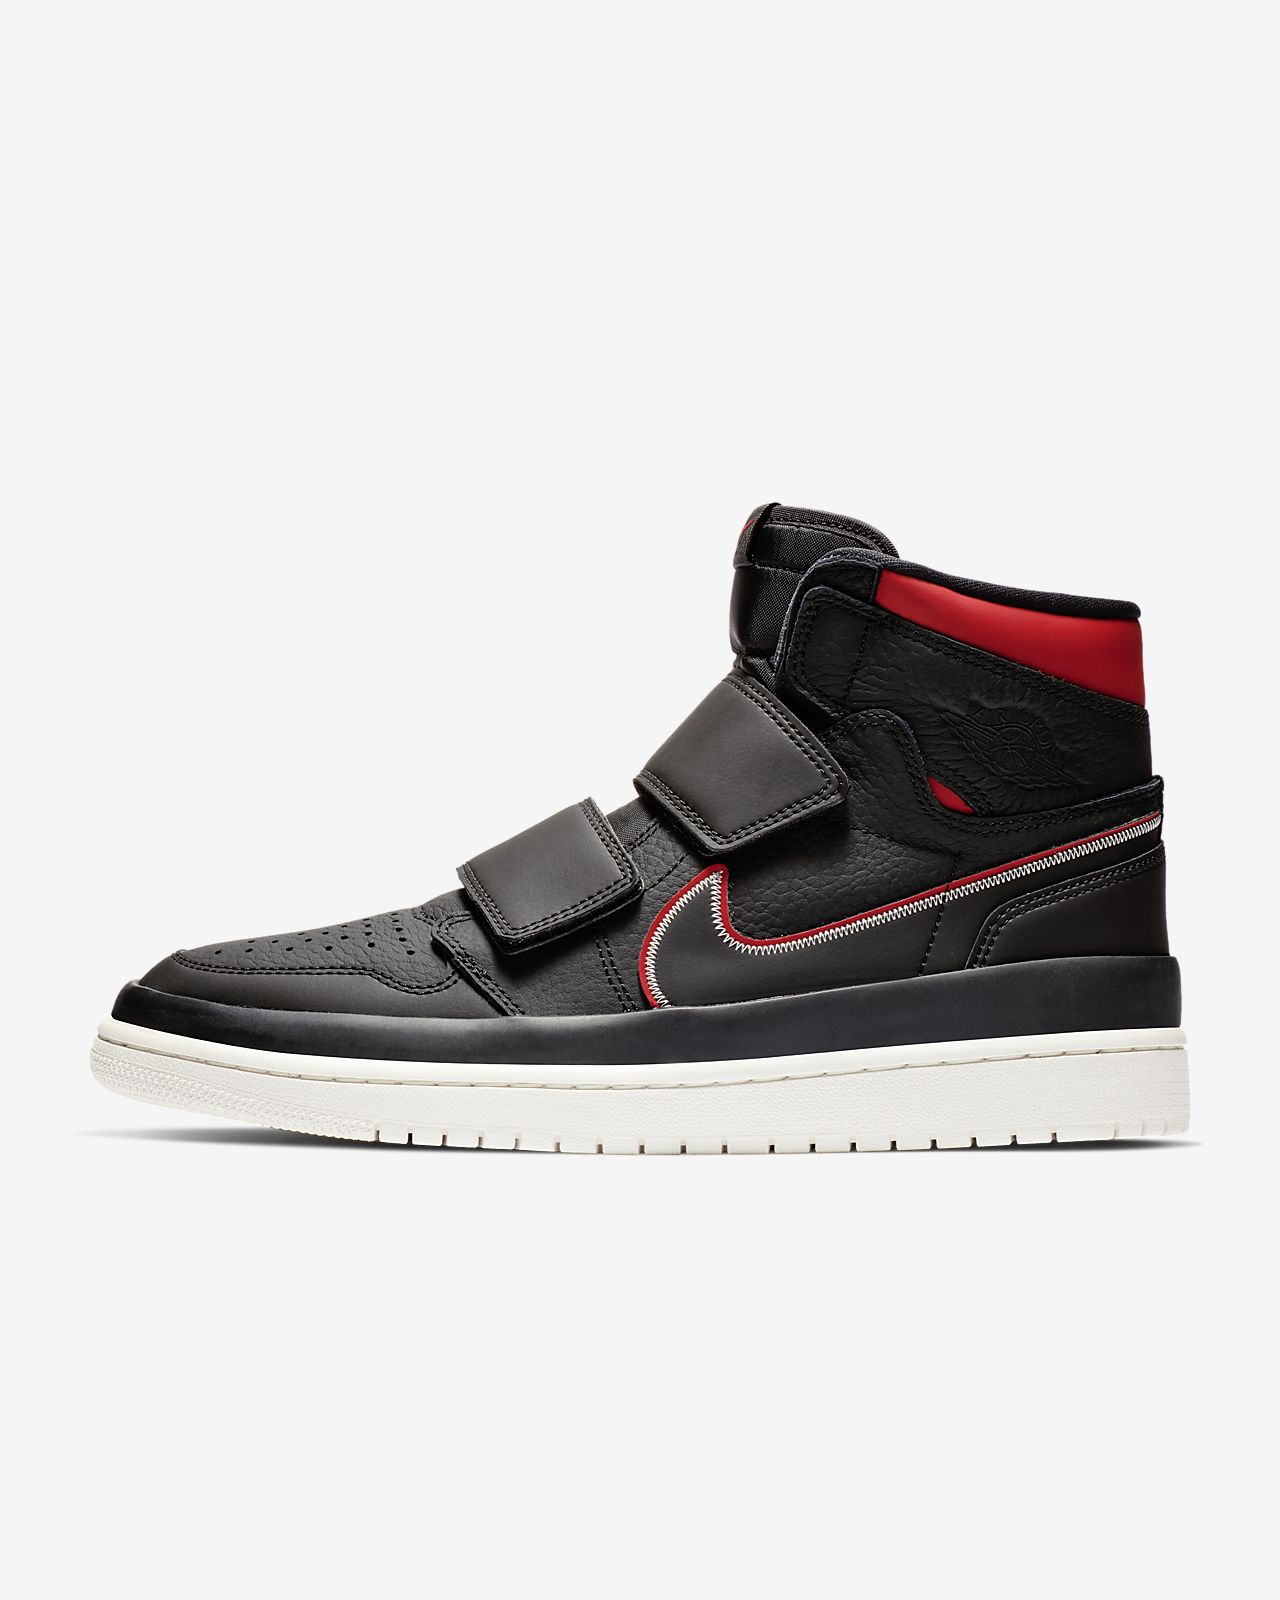 eb010bedfe61 Air Jordan 1 Retro High Double-Strap Men s Shoe. Nike.com CA